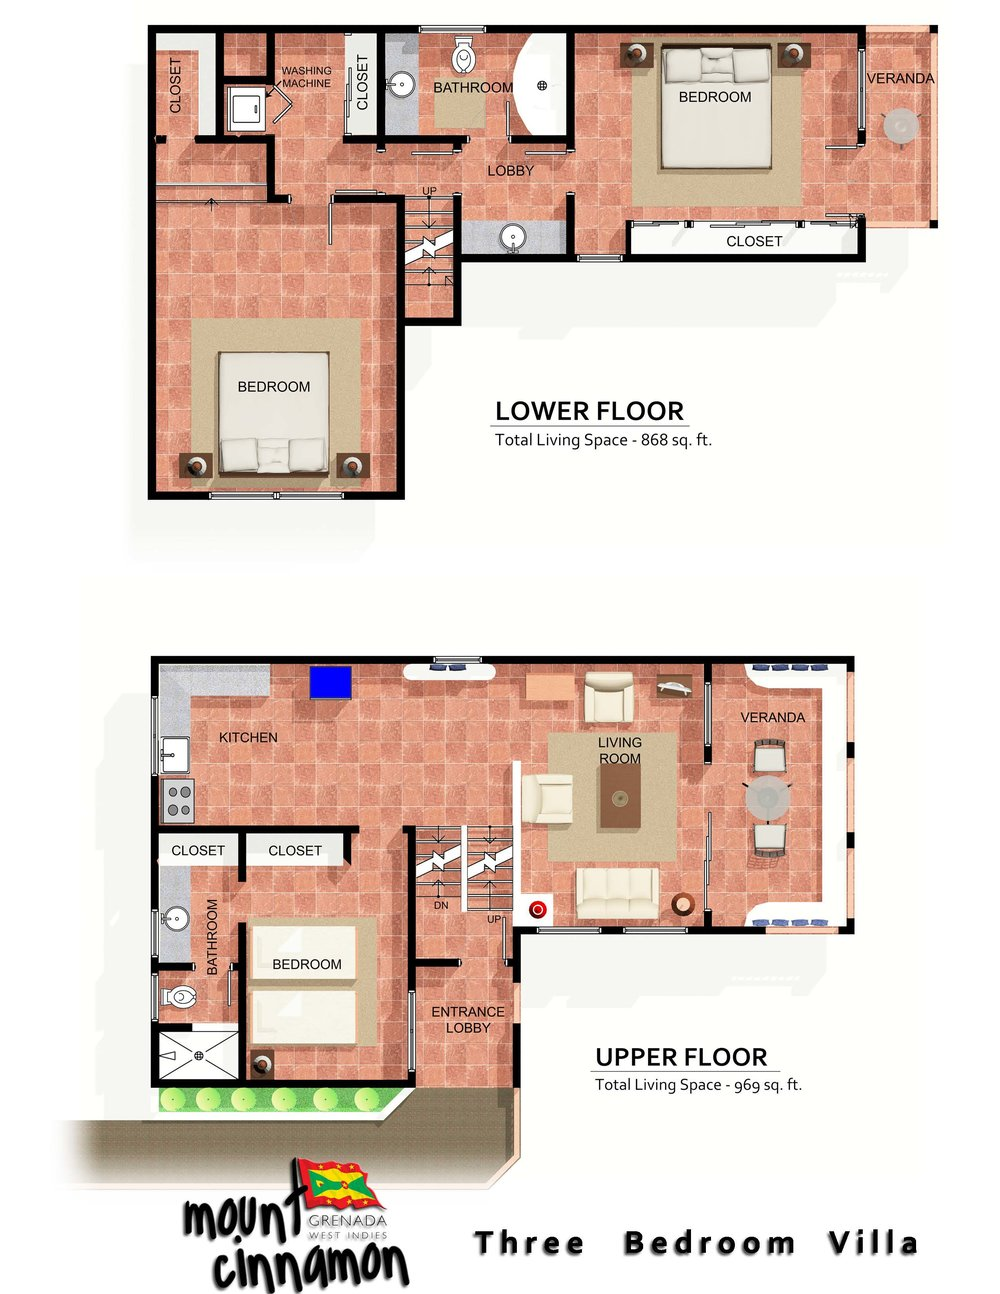 MC-Three-Bedroom-Villa Floorplan.jpg